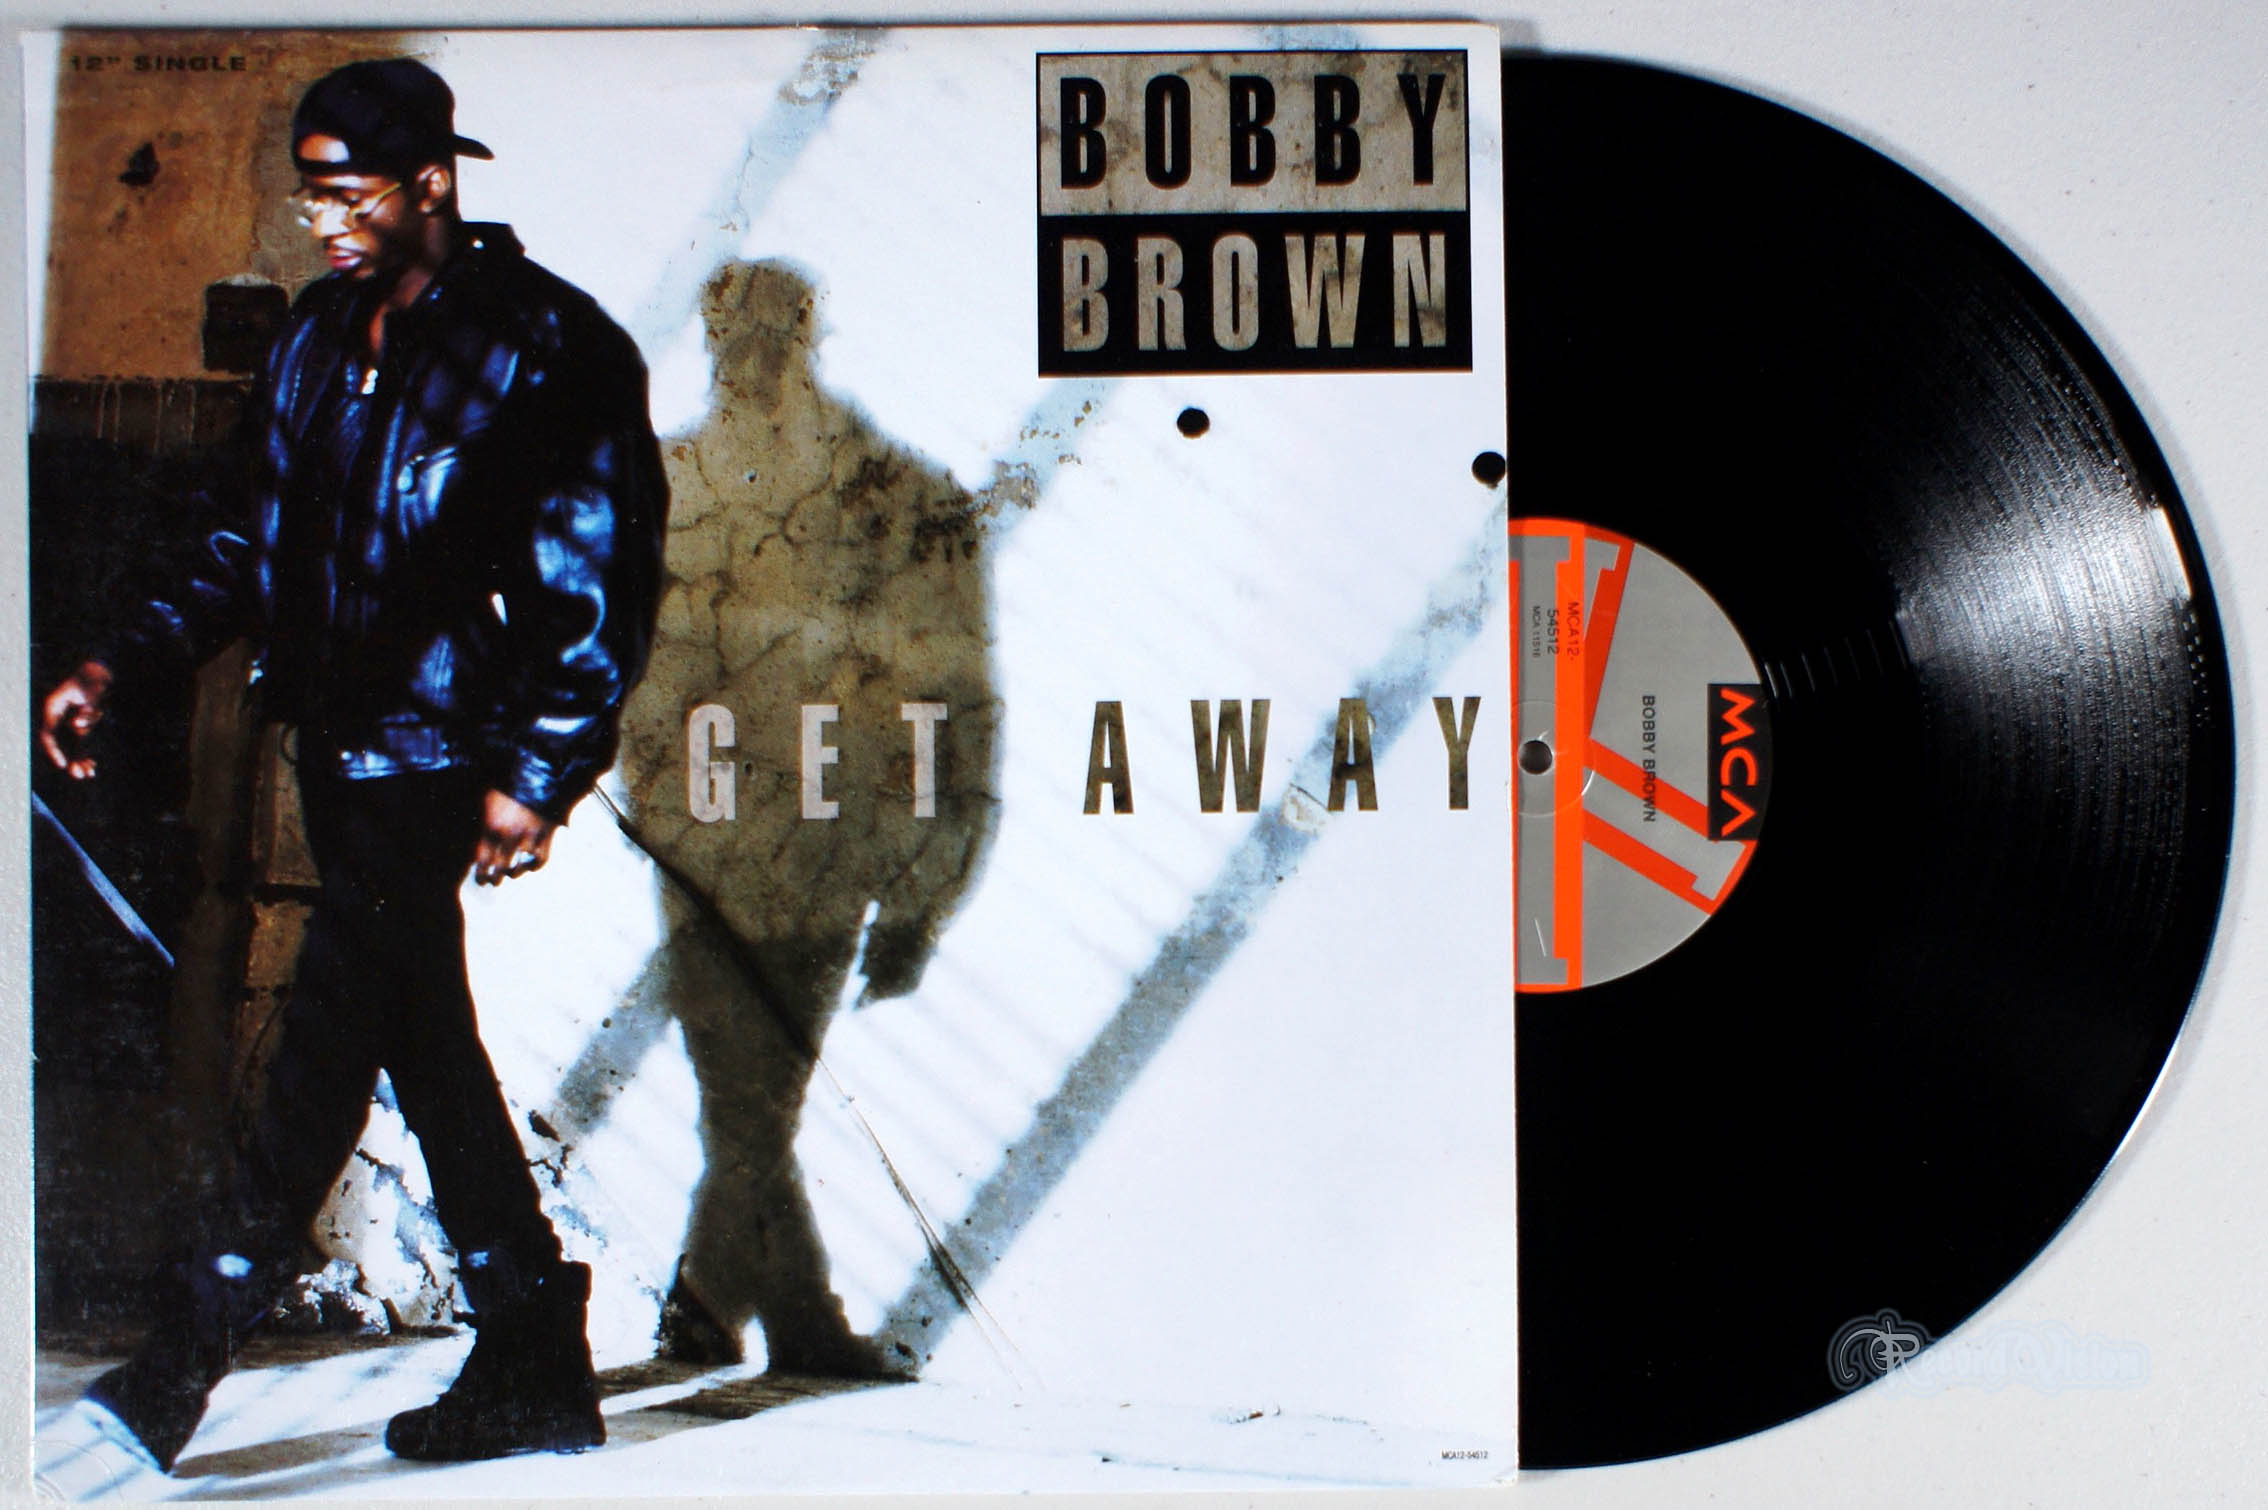 BOBBY BROWN - Get Away - 12 inch x 1